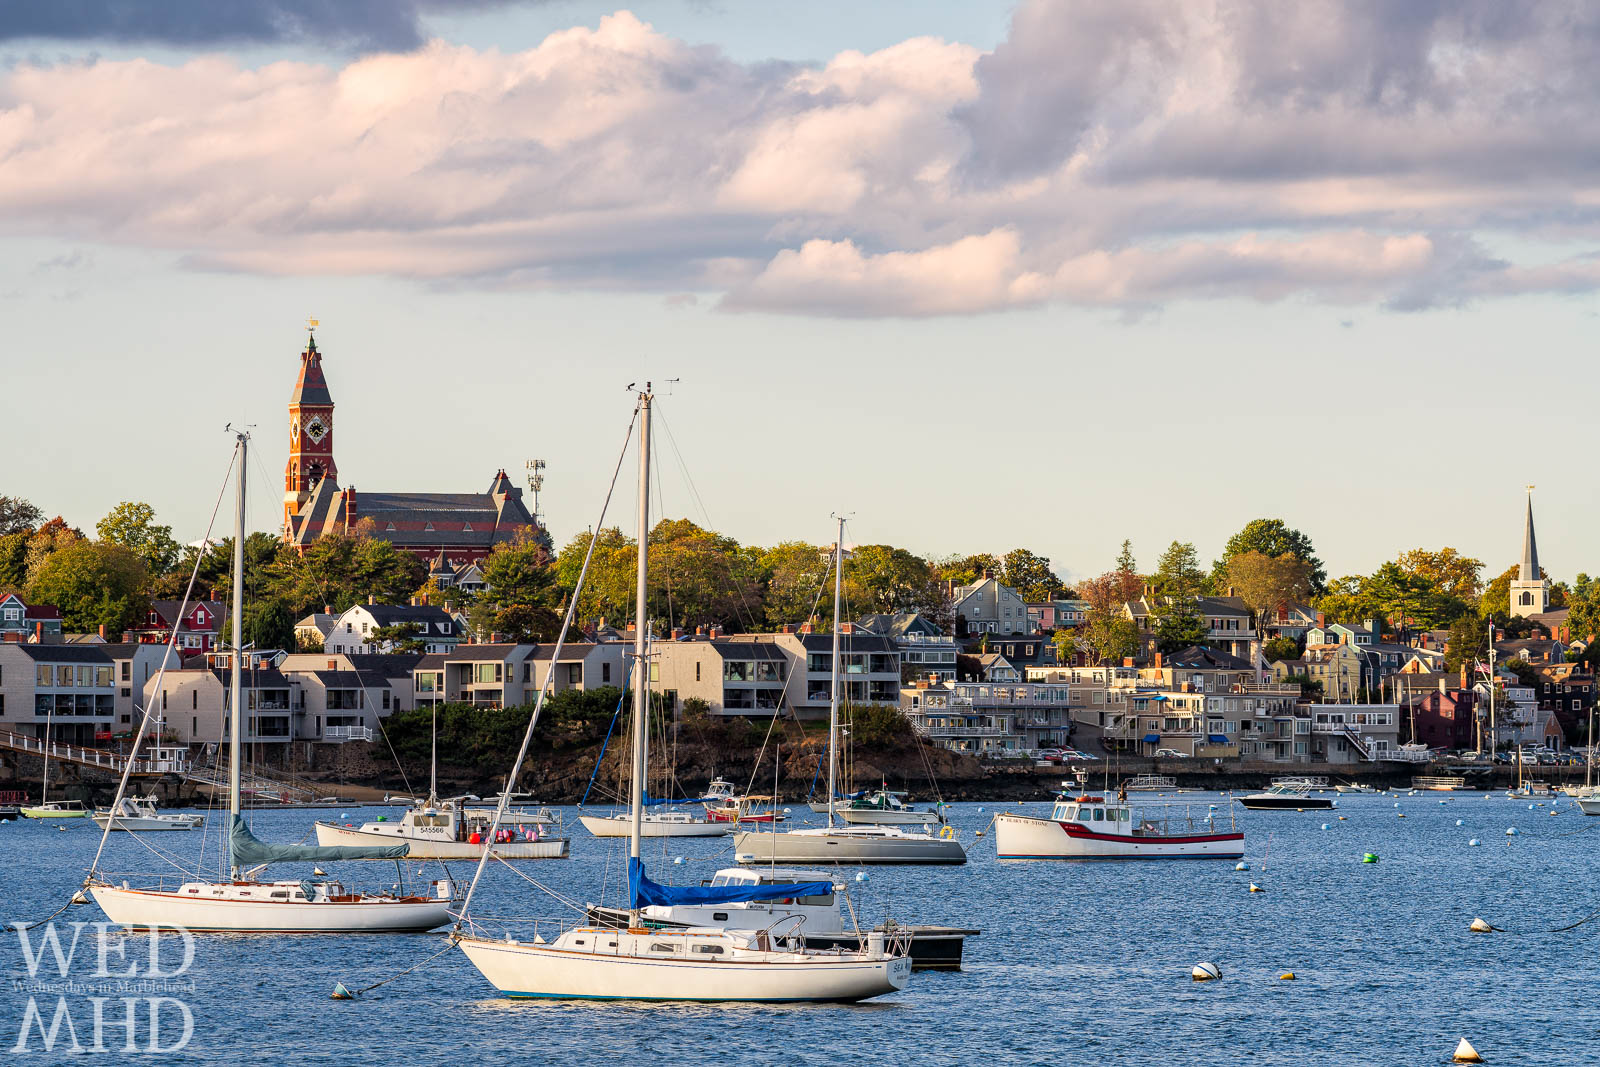 Fewer boats fill their moorings as fall takes hold in Marblehead Harbor. Subtle foliage can be seen across the harbor.